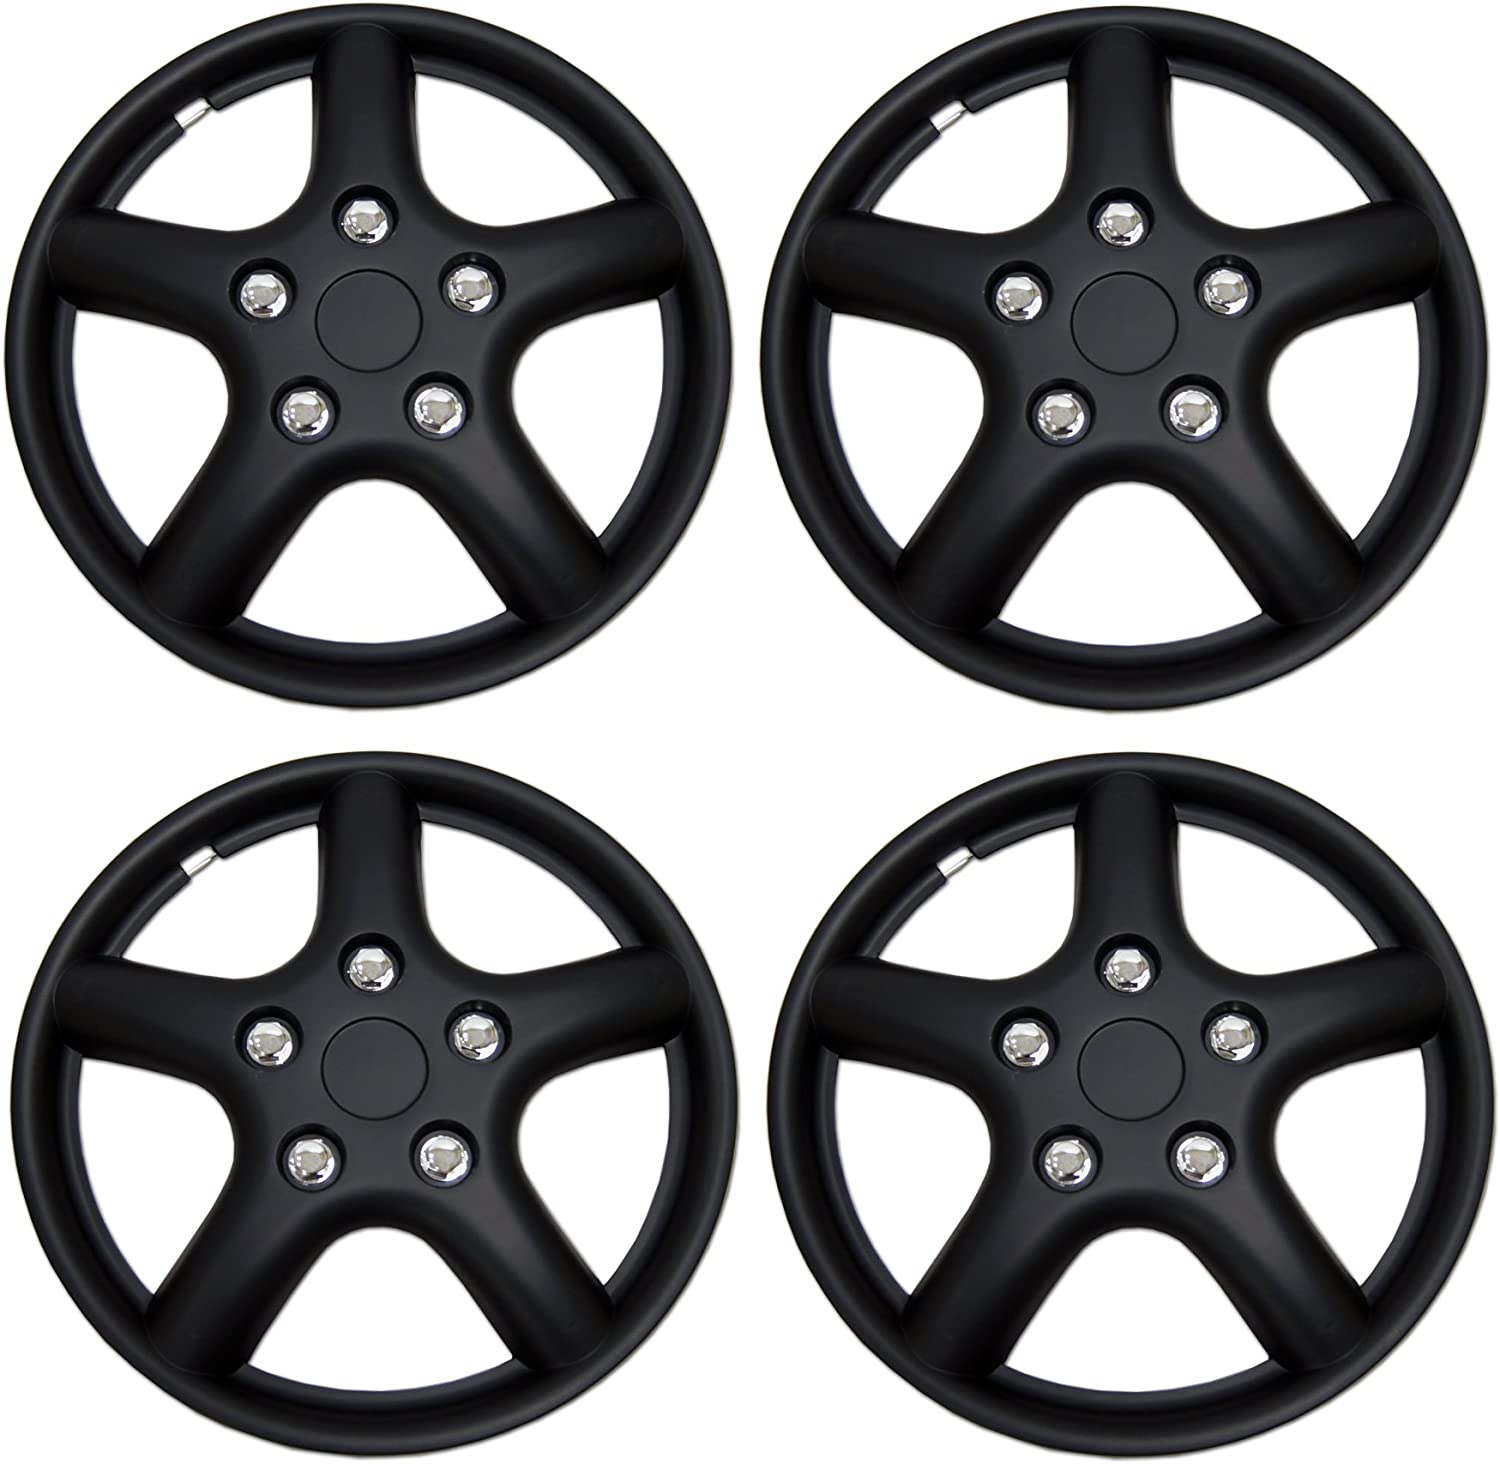 Pop-On 15-Inches Style Snap-On Tuningpros WC3-15-1028L-B Type Matte Black Wheel Covers Hub-caps Pack of 4 Hubcaps